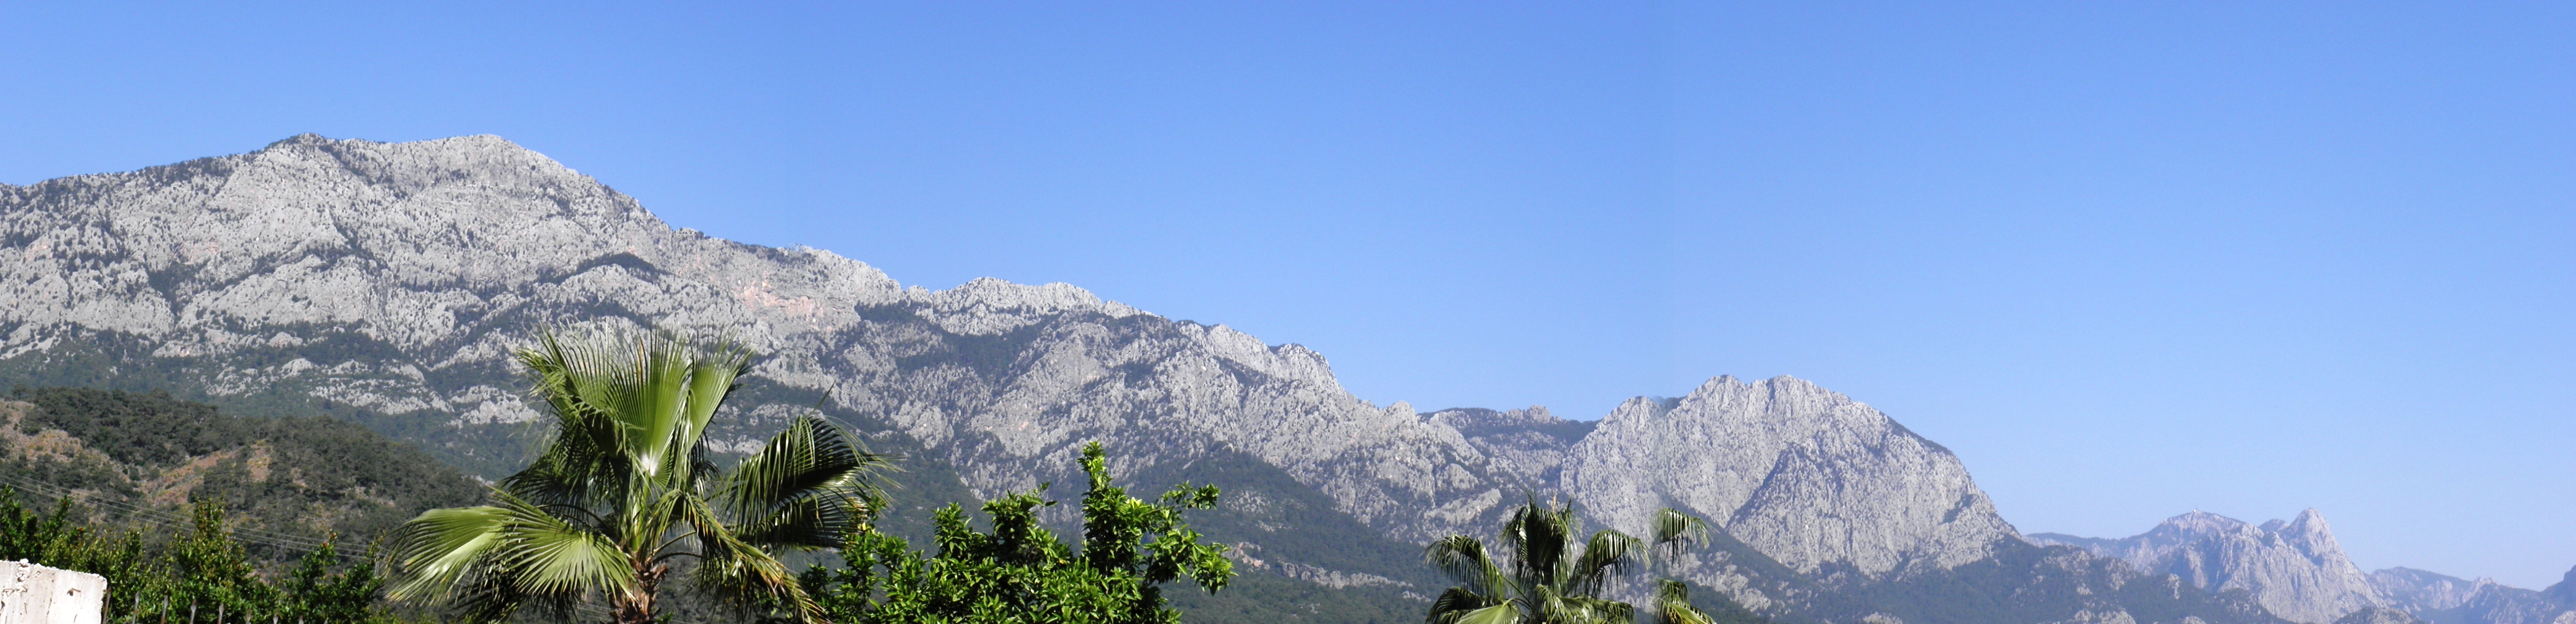 Landscape of the taurus mountains photo